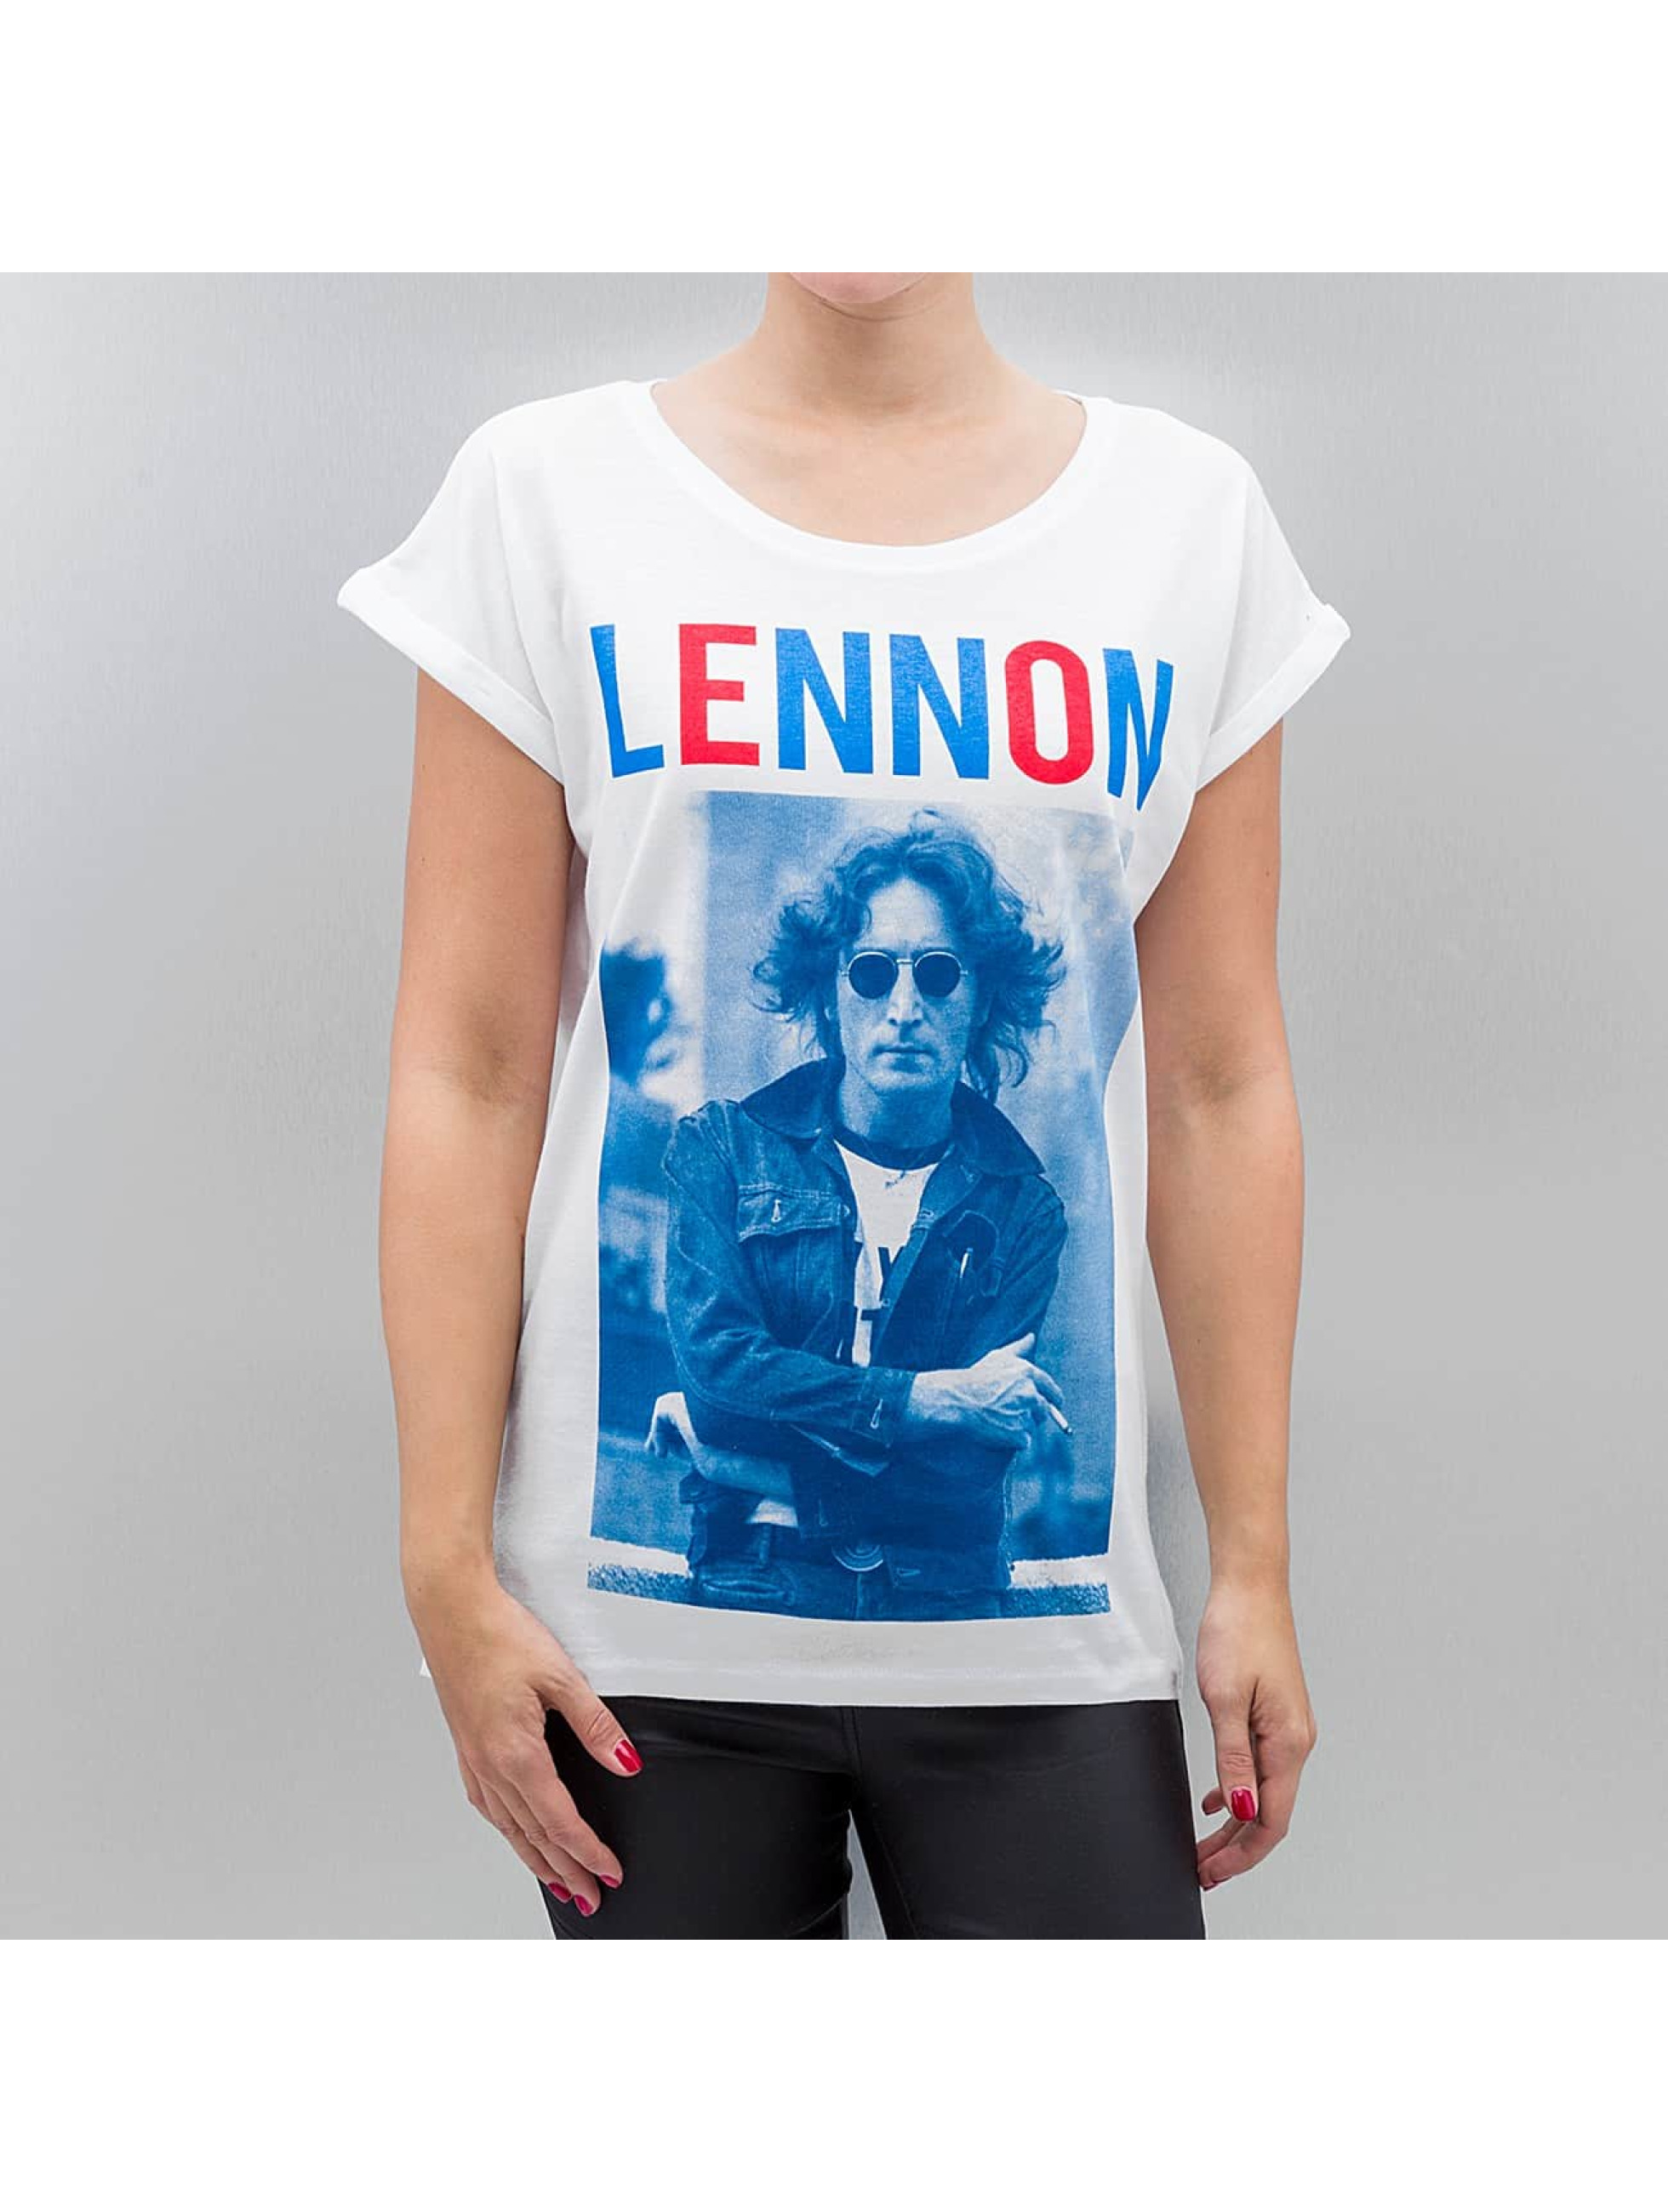 Mister Tee T-Shirt Ladies John Lennon Bluered weiß